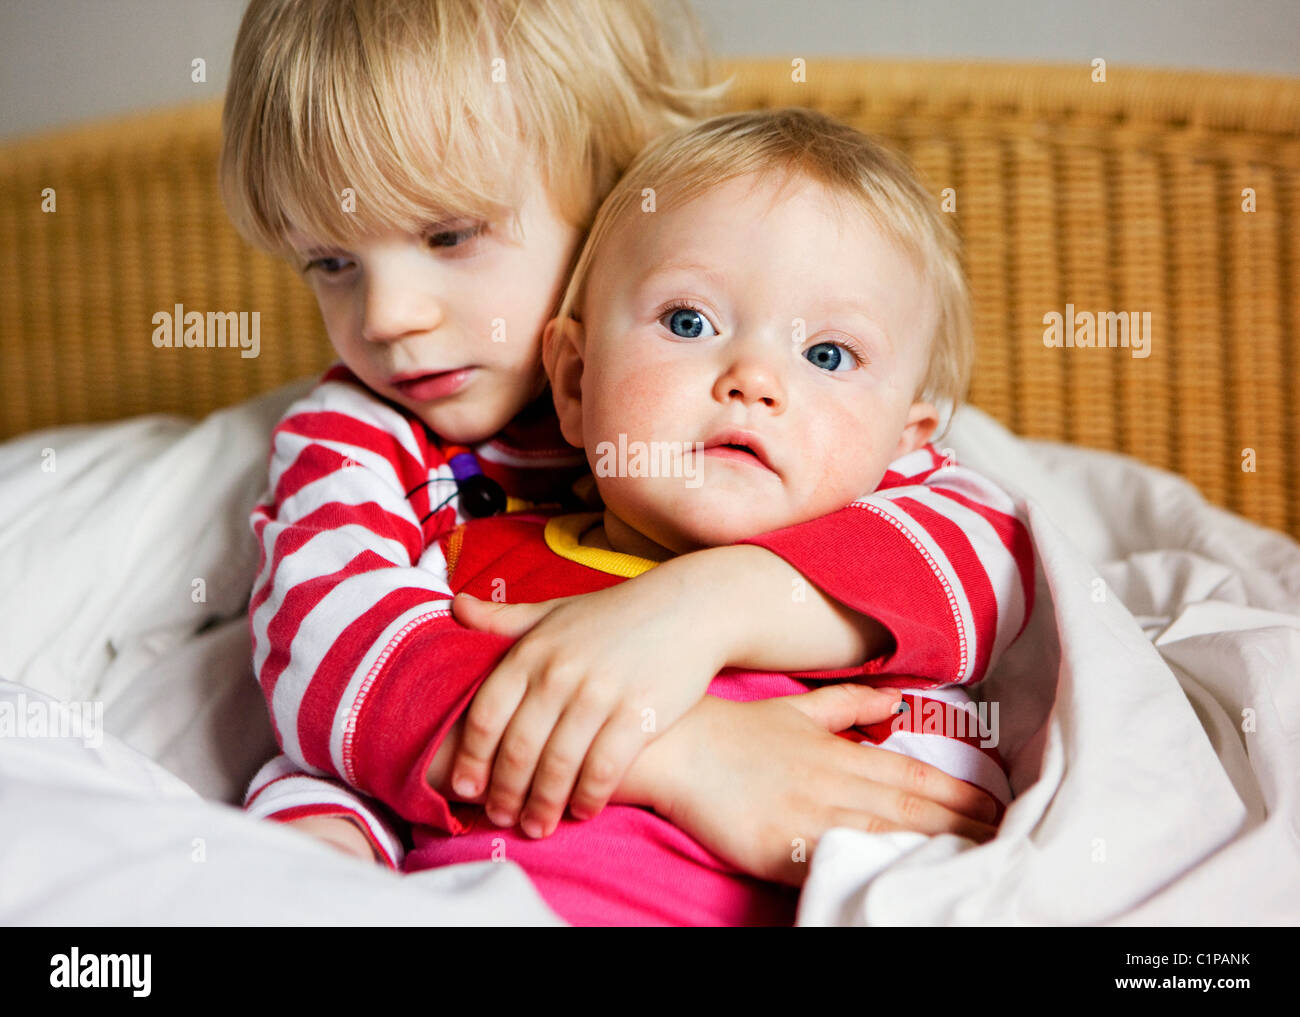 Boy embracing sister on bed - Stock Image